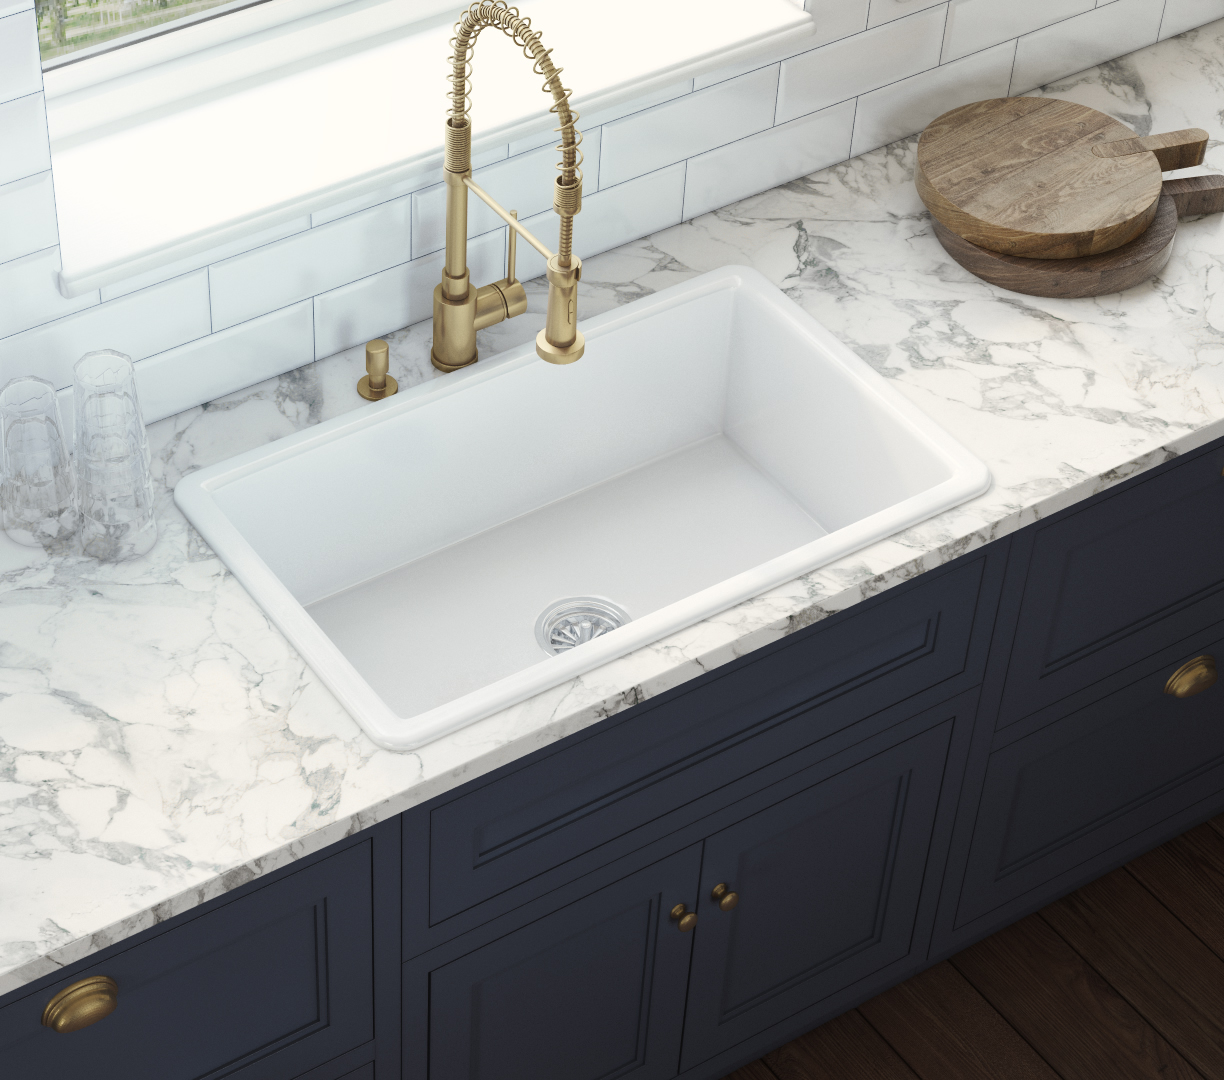 Ruvati 30 inch Fireclay Undermount / Drop in Topmount Kitchen Sink